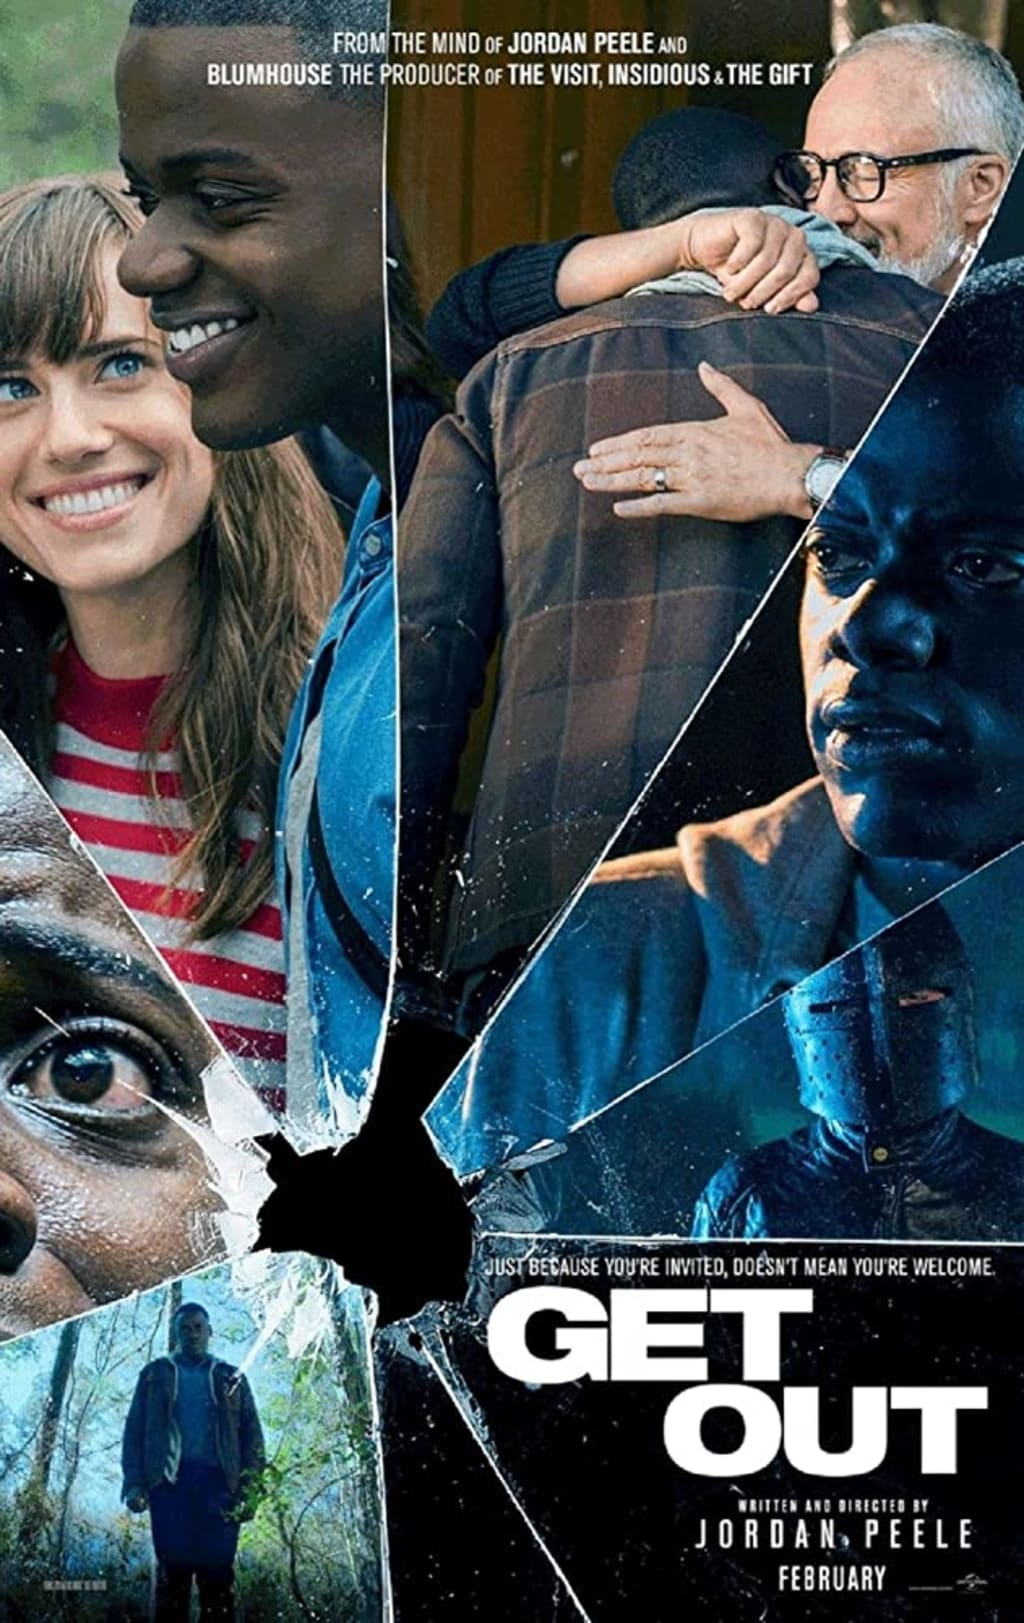 Reed Alexander's Horror Review of 'Get Out' (2017)